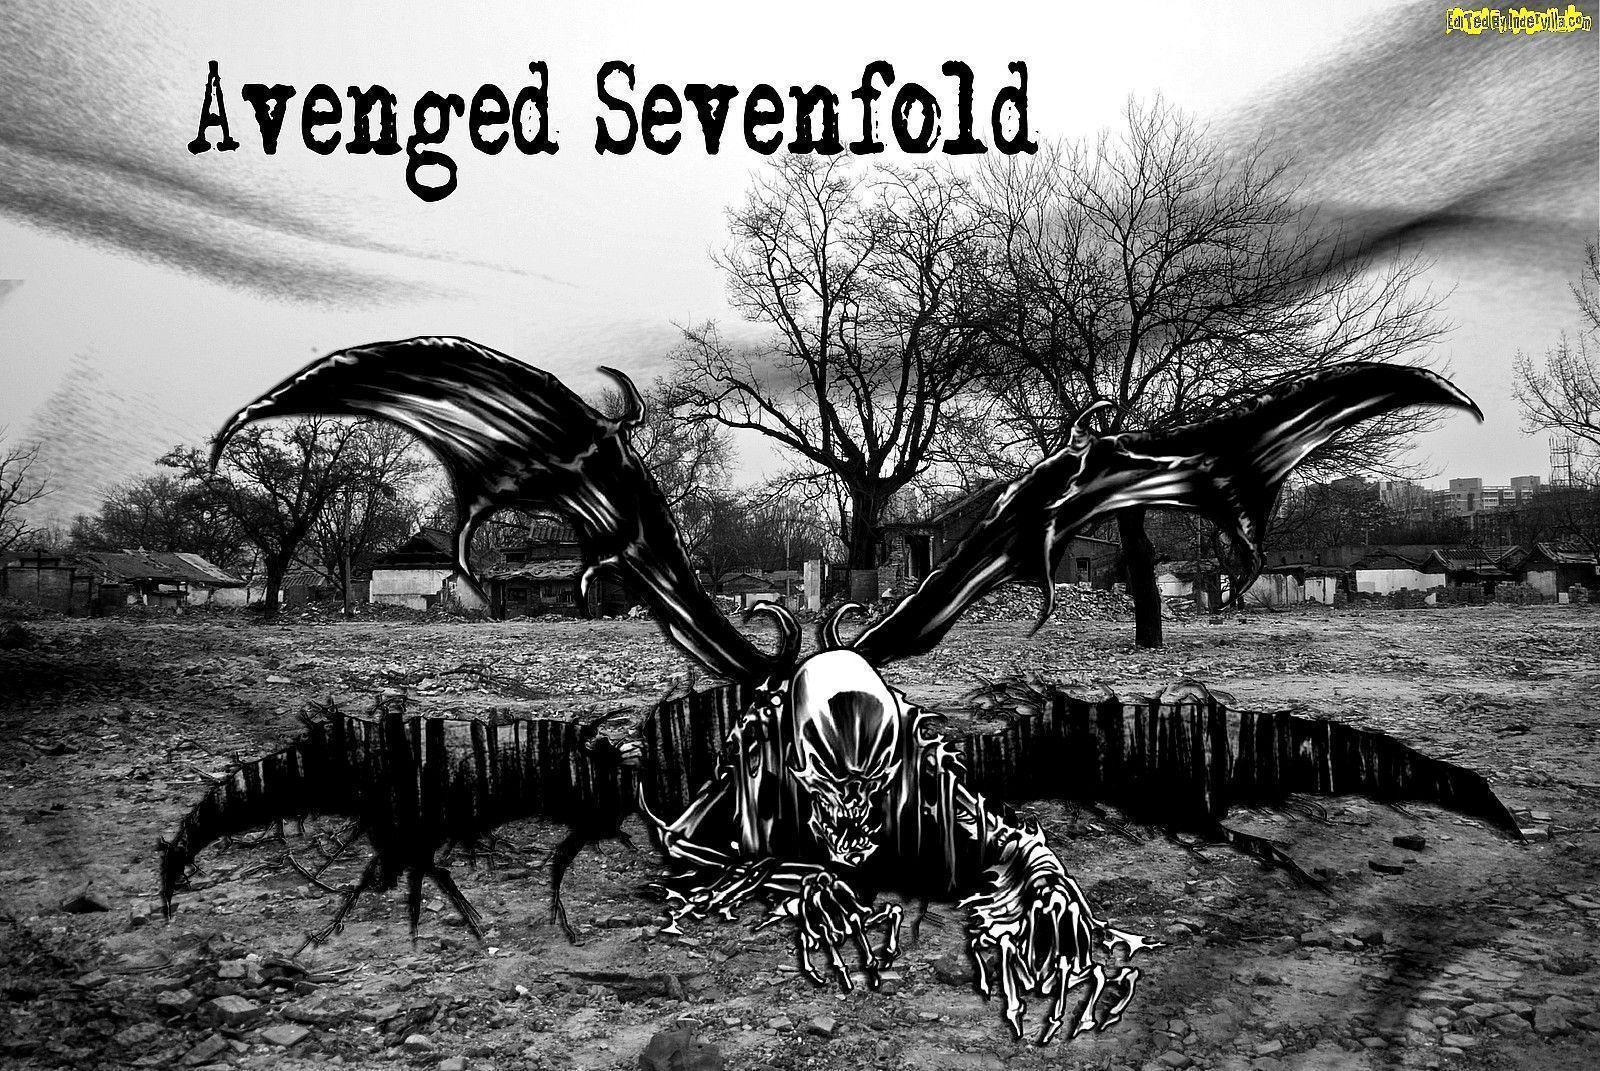 Avenged sevenfold wallpapers hd wallpaper cave avenged sevenfold hd wallpaper 2376 wallpapers hd colourinwallpaper voltagebd Images